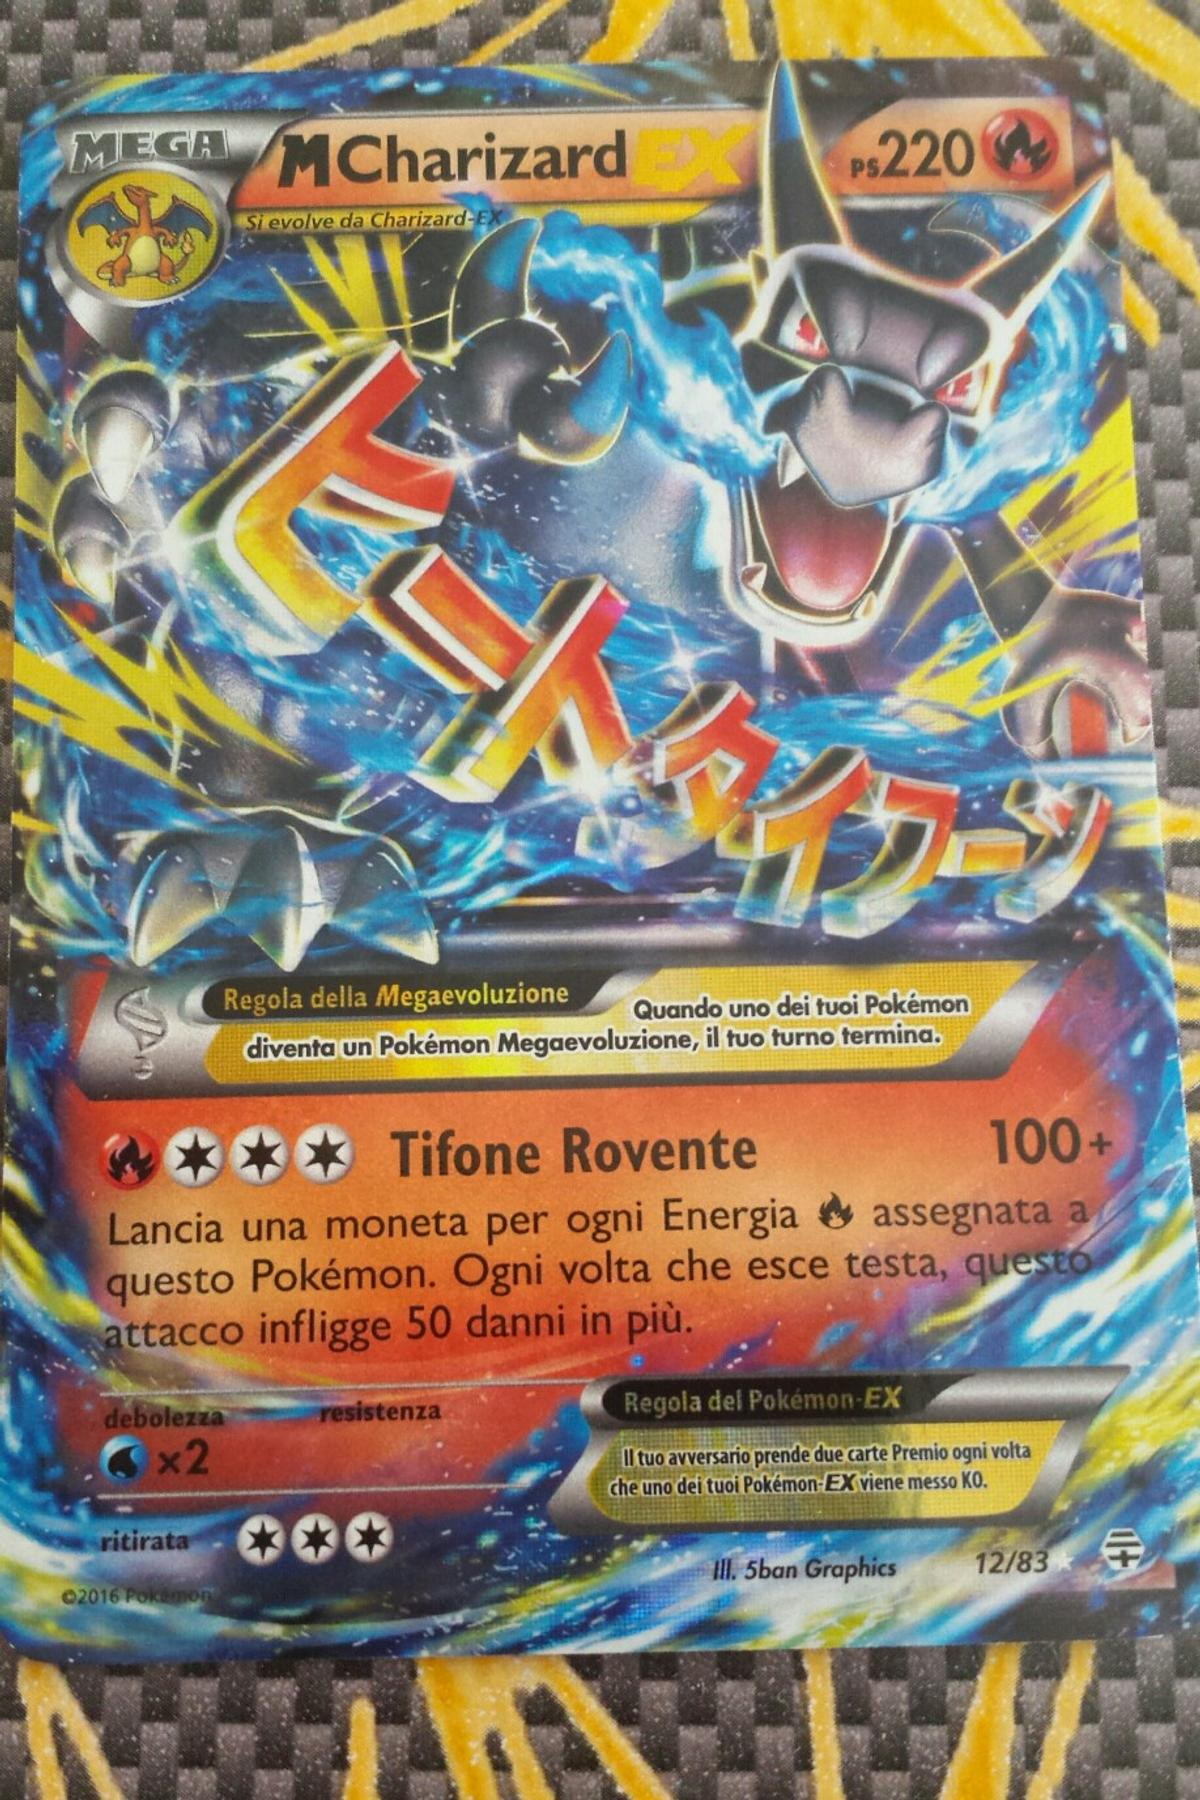 Pokemon Carte Ex In 26900 Lodi For 30 00 For Sale Shpock